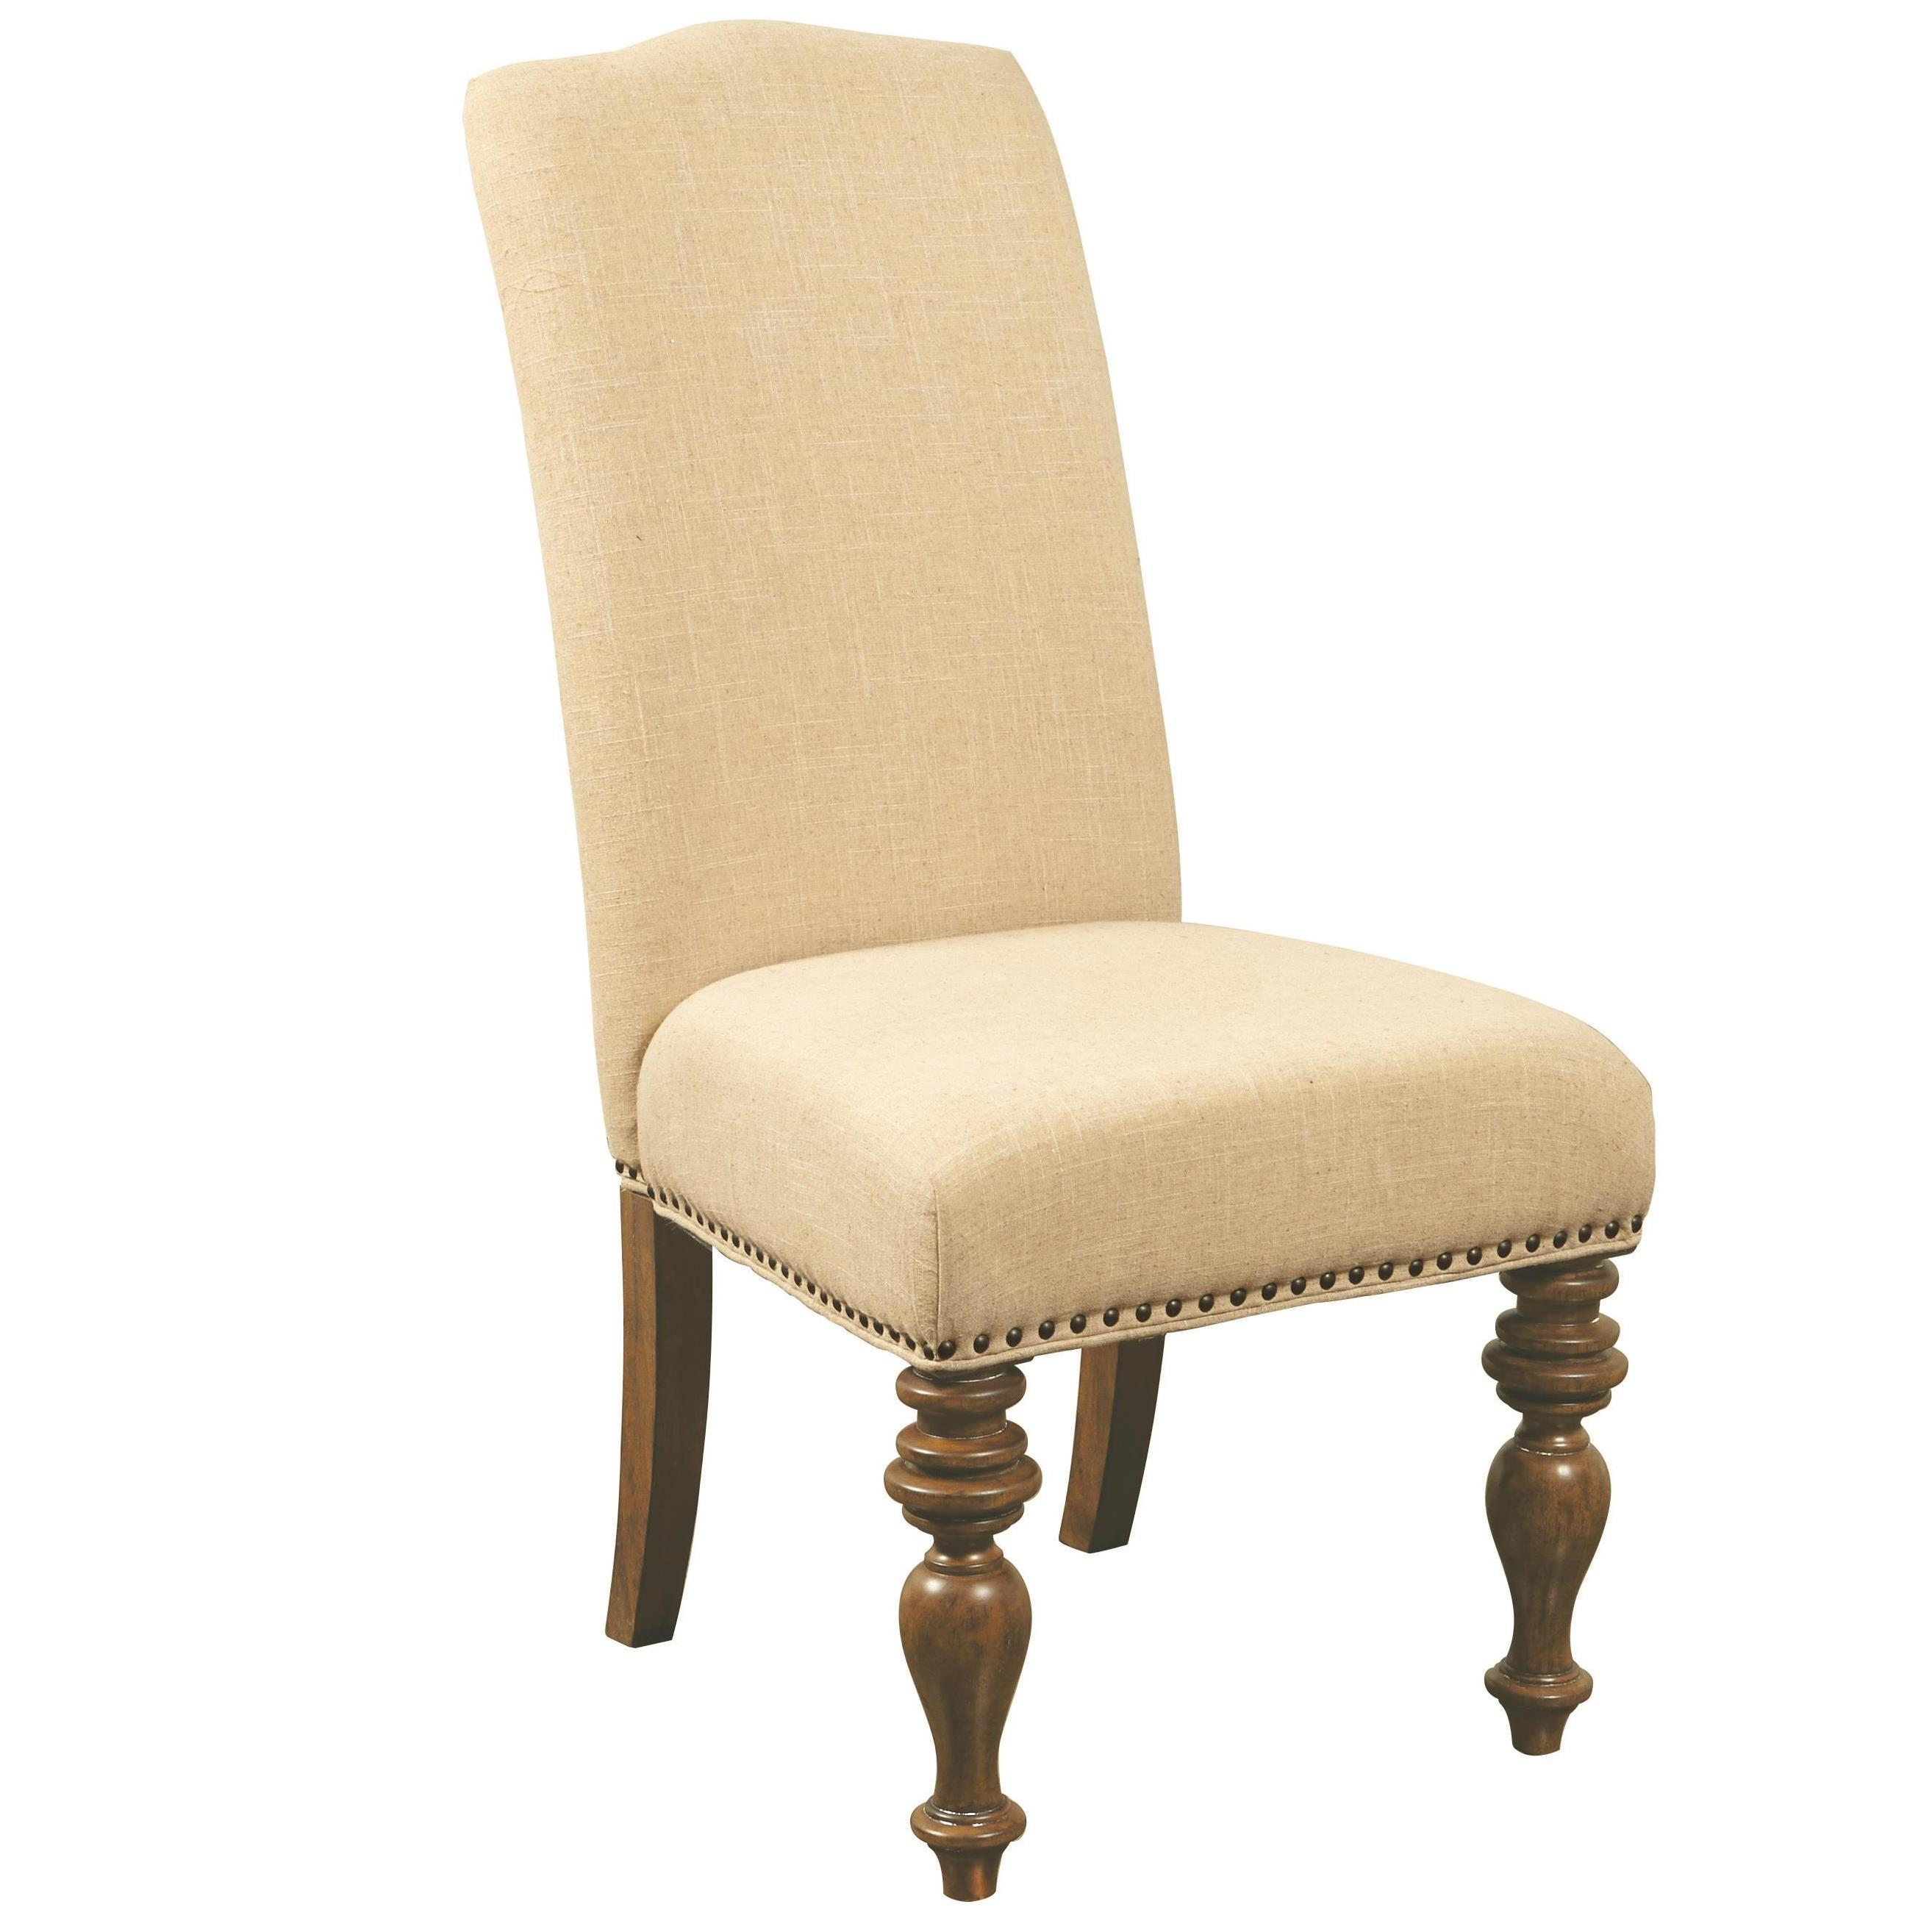 Belfort Select Virginia Mill Upholstered Side Chair - Item Number: 8854-150F